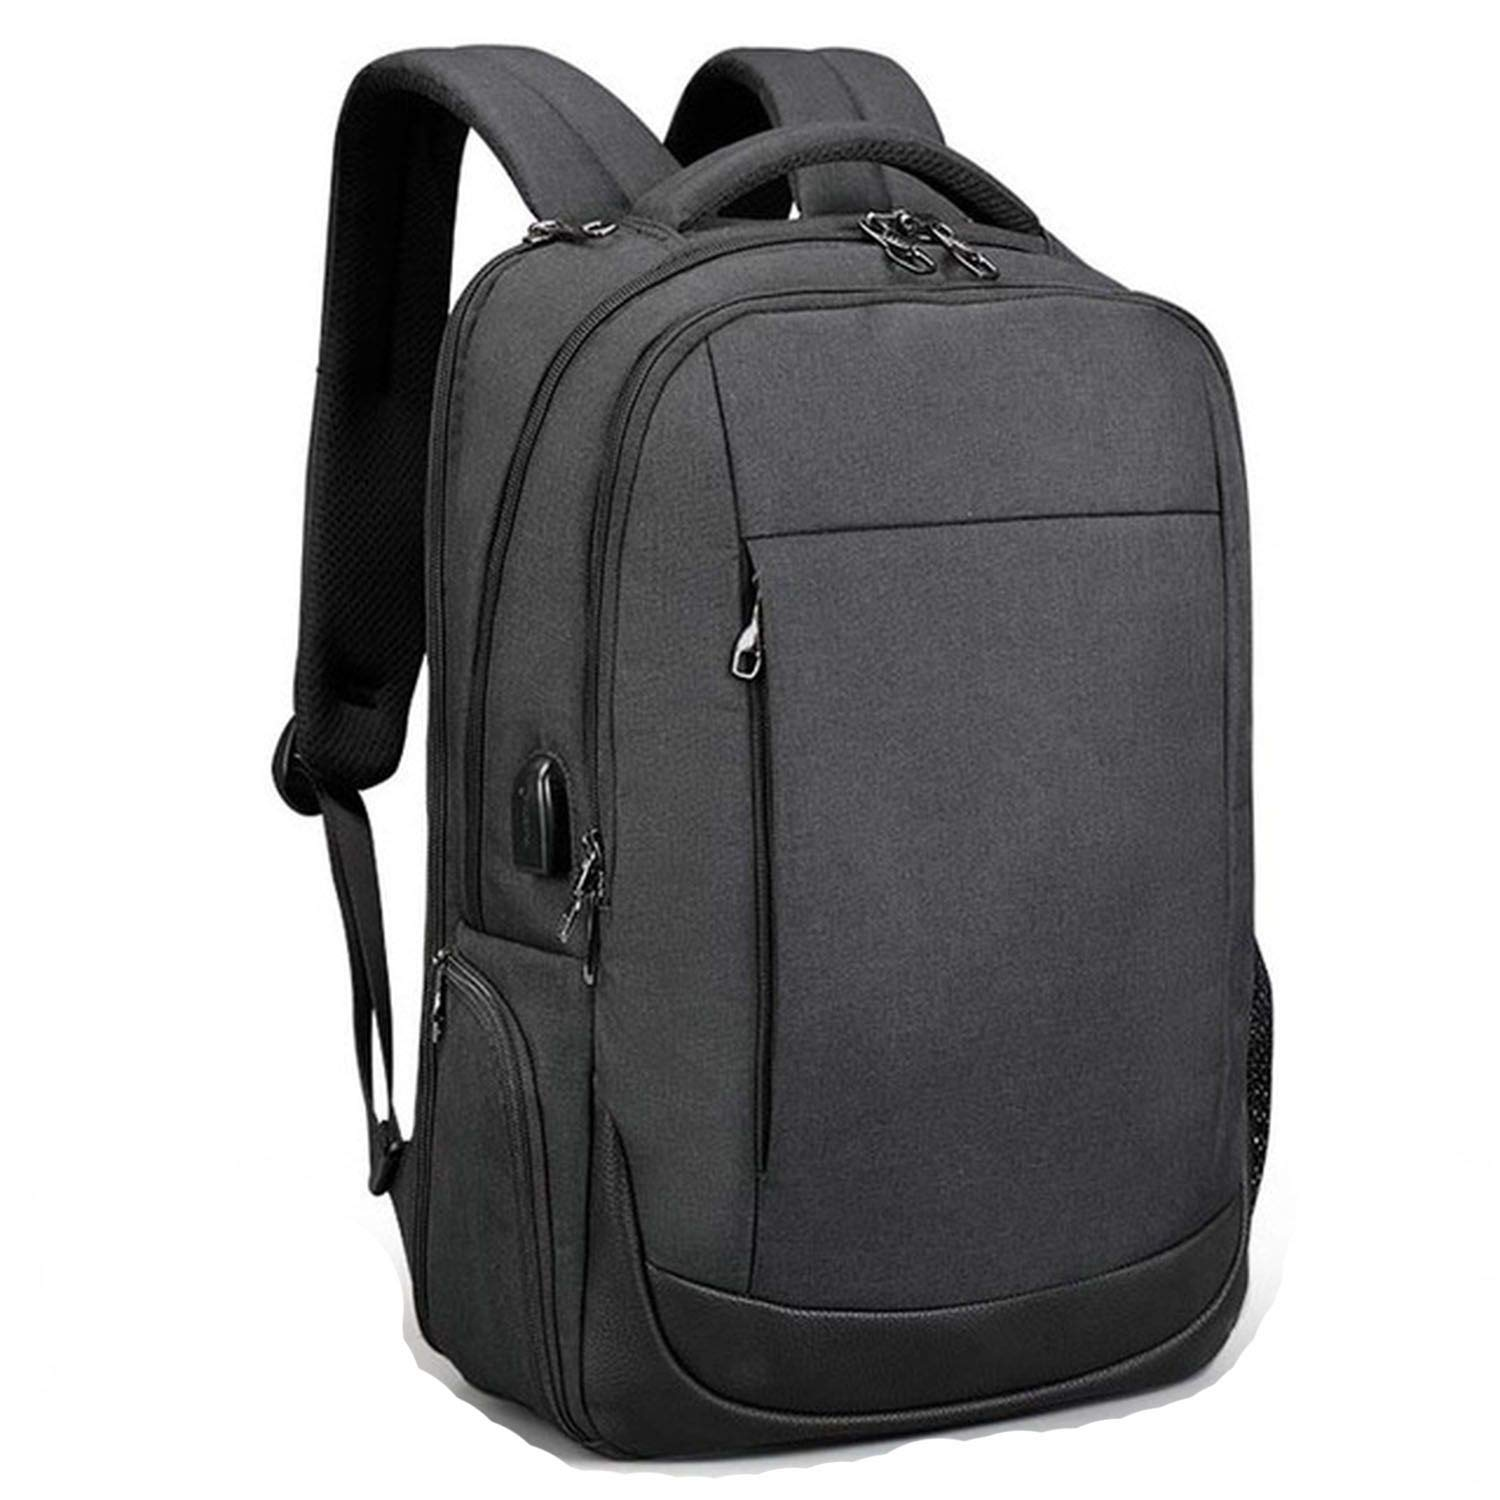 55e54325de20 Amazon.com: USB Waterproof Anti Theft Backpacks Male Laptop Travel ...